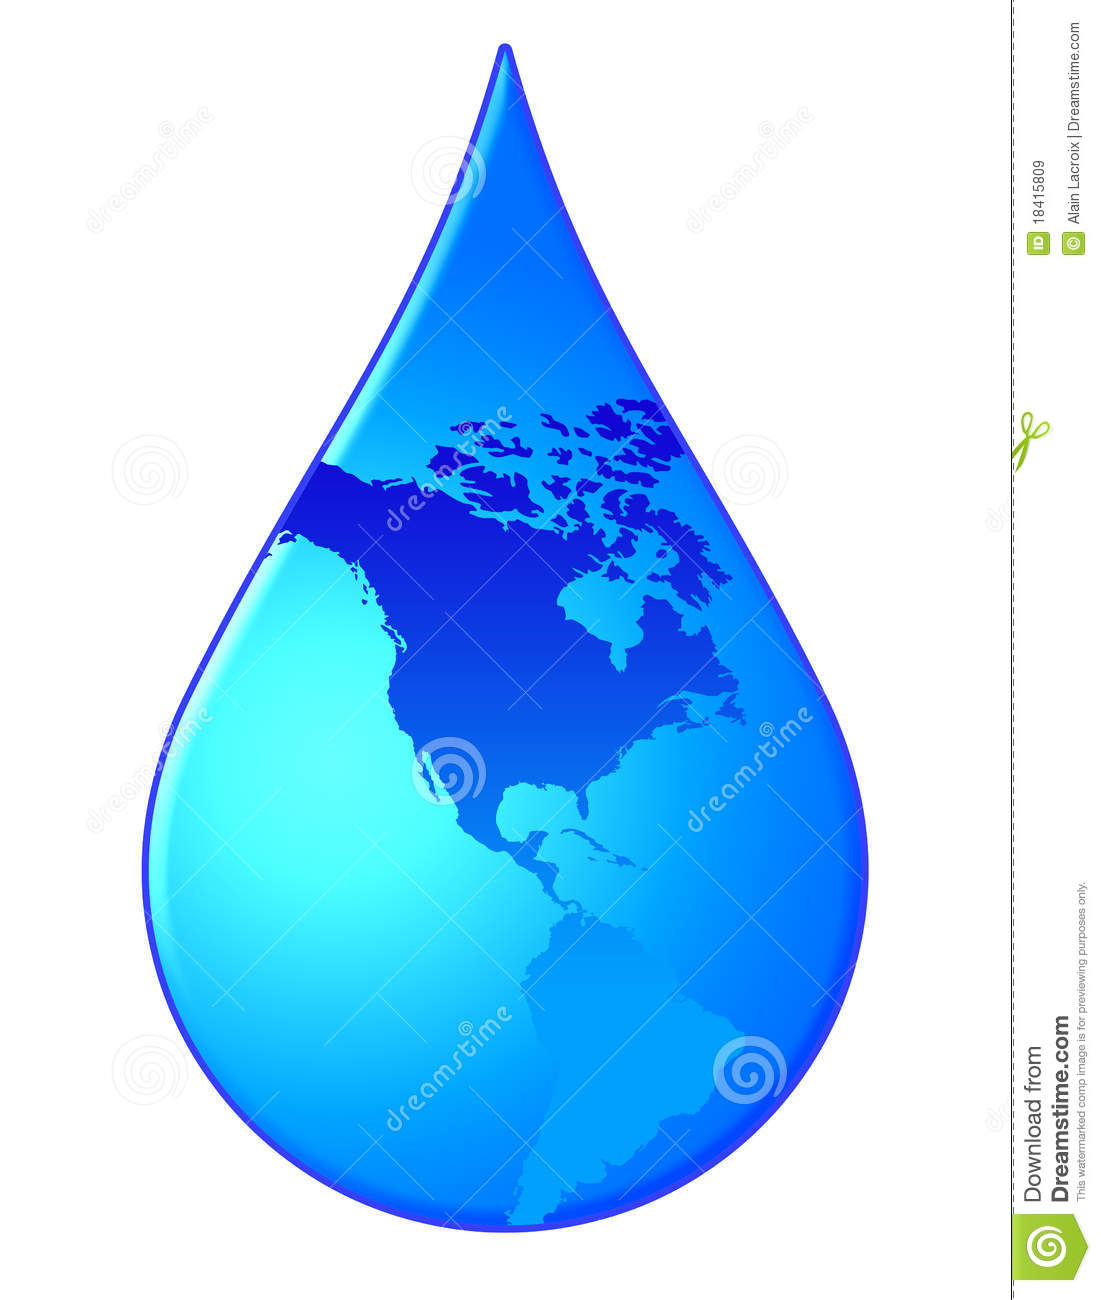 Water drop with the americas in it (need for water concept).